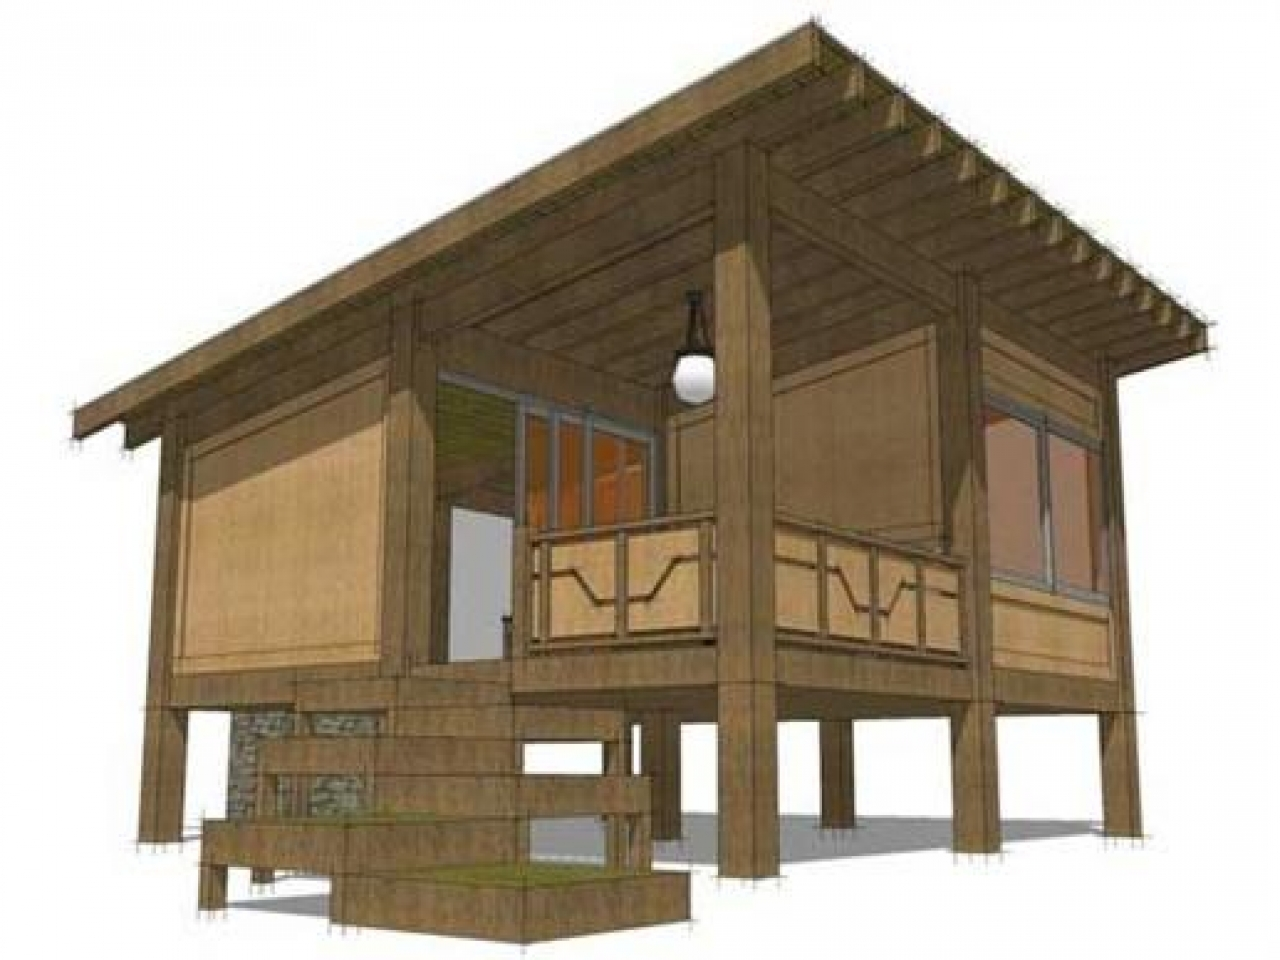 Shed roof cabin plans hunting cabin house plans hunting for Shed roof house plans